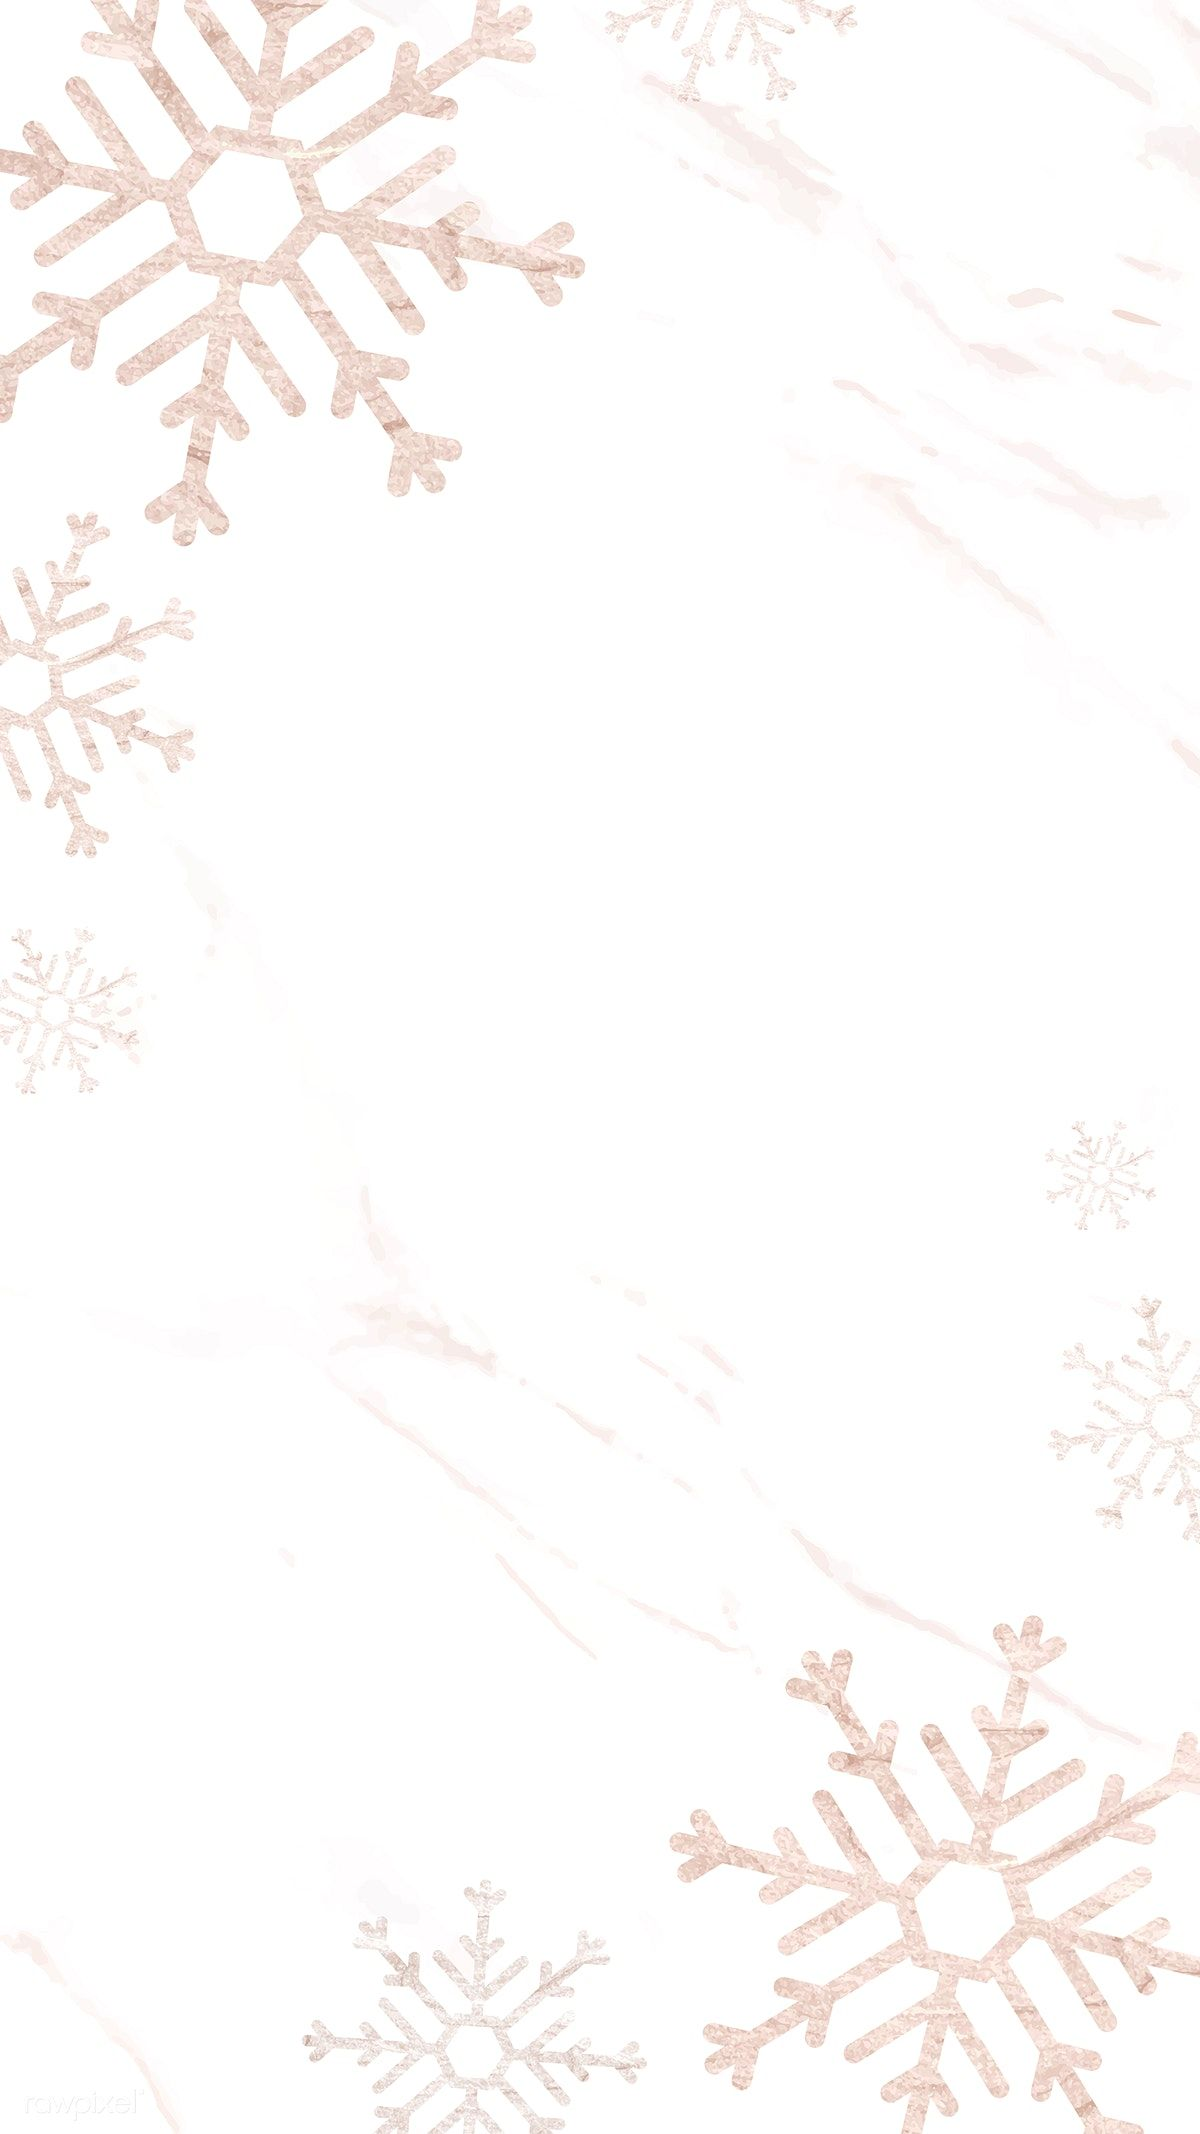 Download Premium Vector Of Snowflakes Patterned On White Mobile Phone Christmas Phone Wallpaper Winter Wallpaper Wallpaper Iphone Christmas